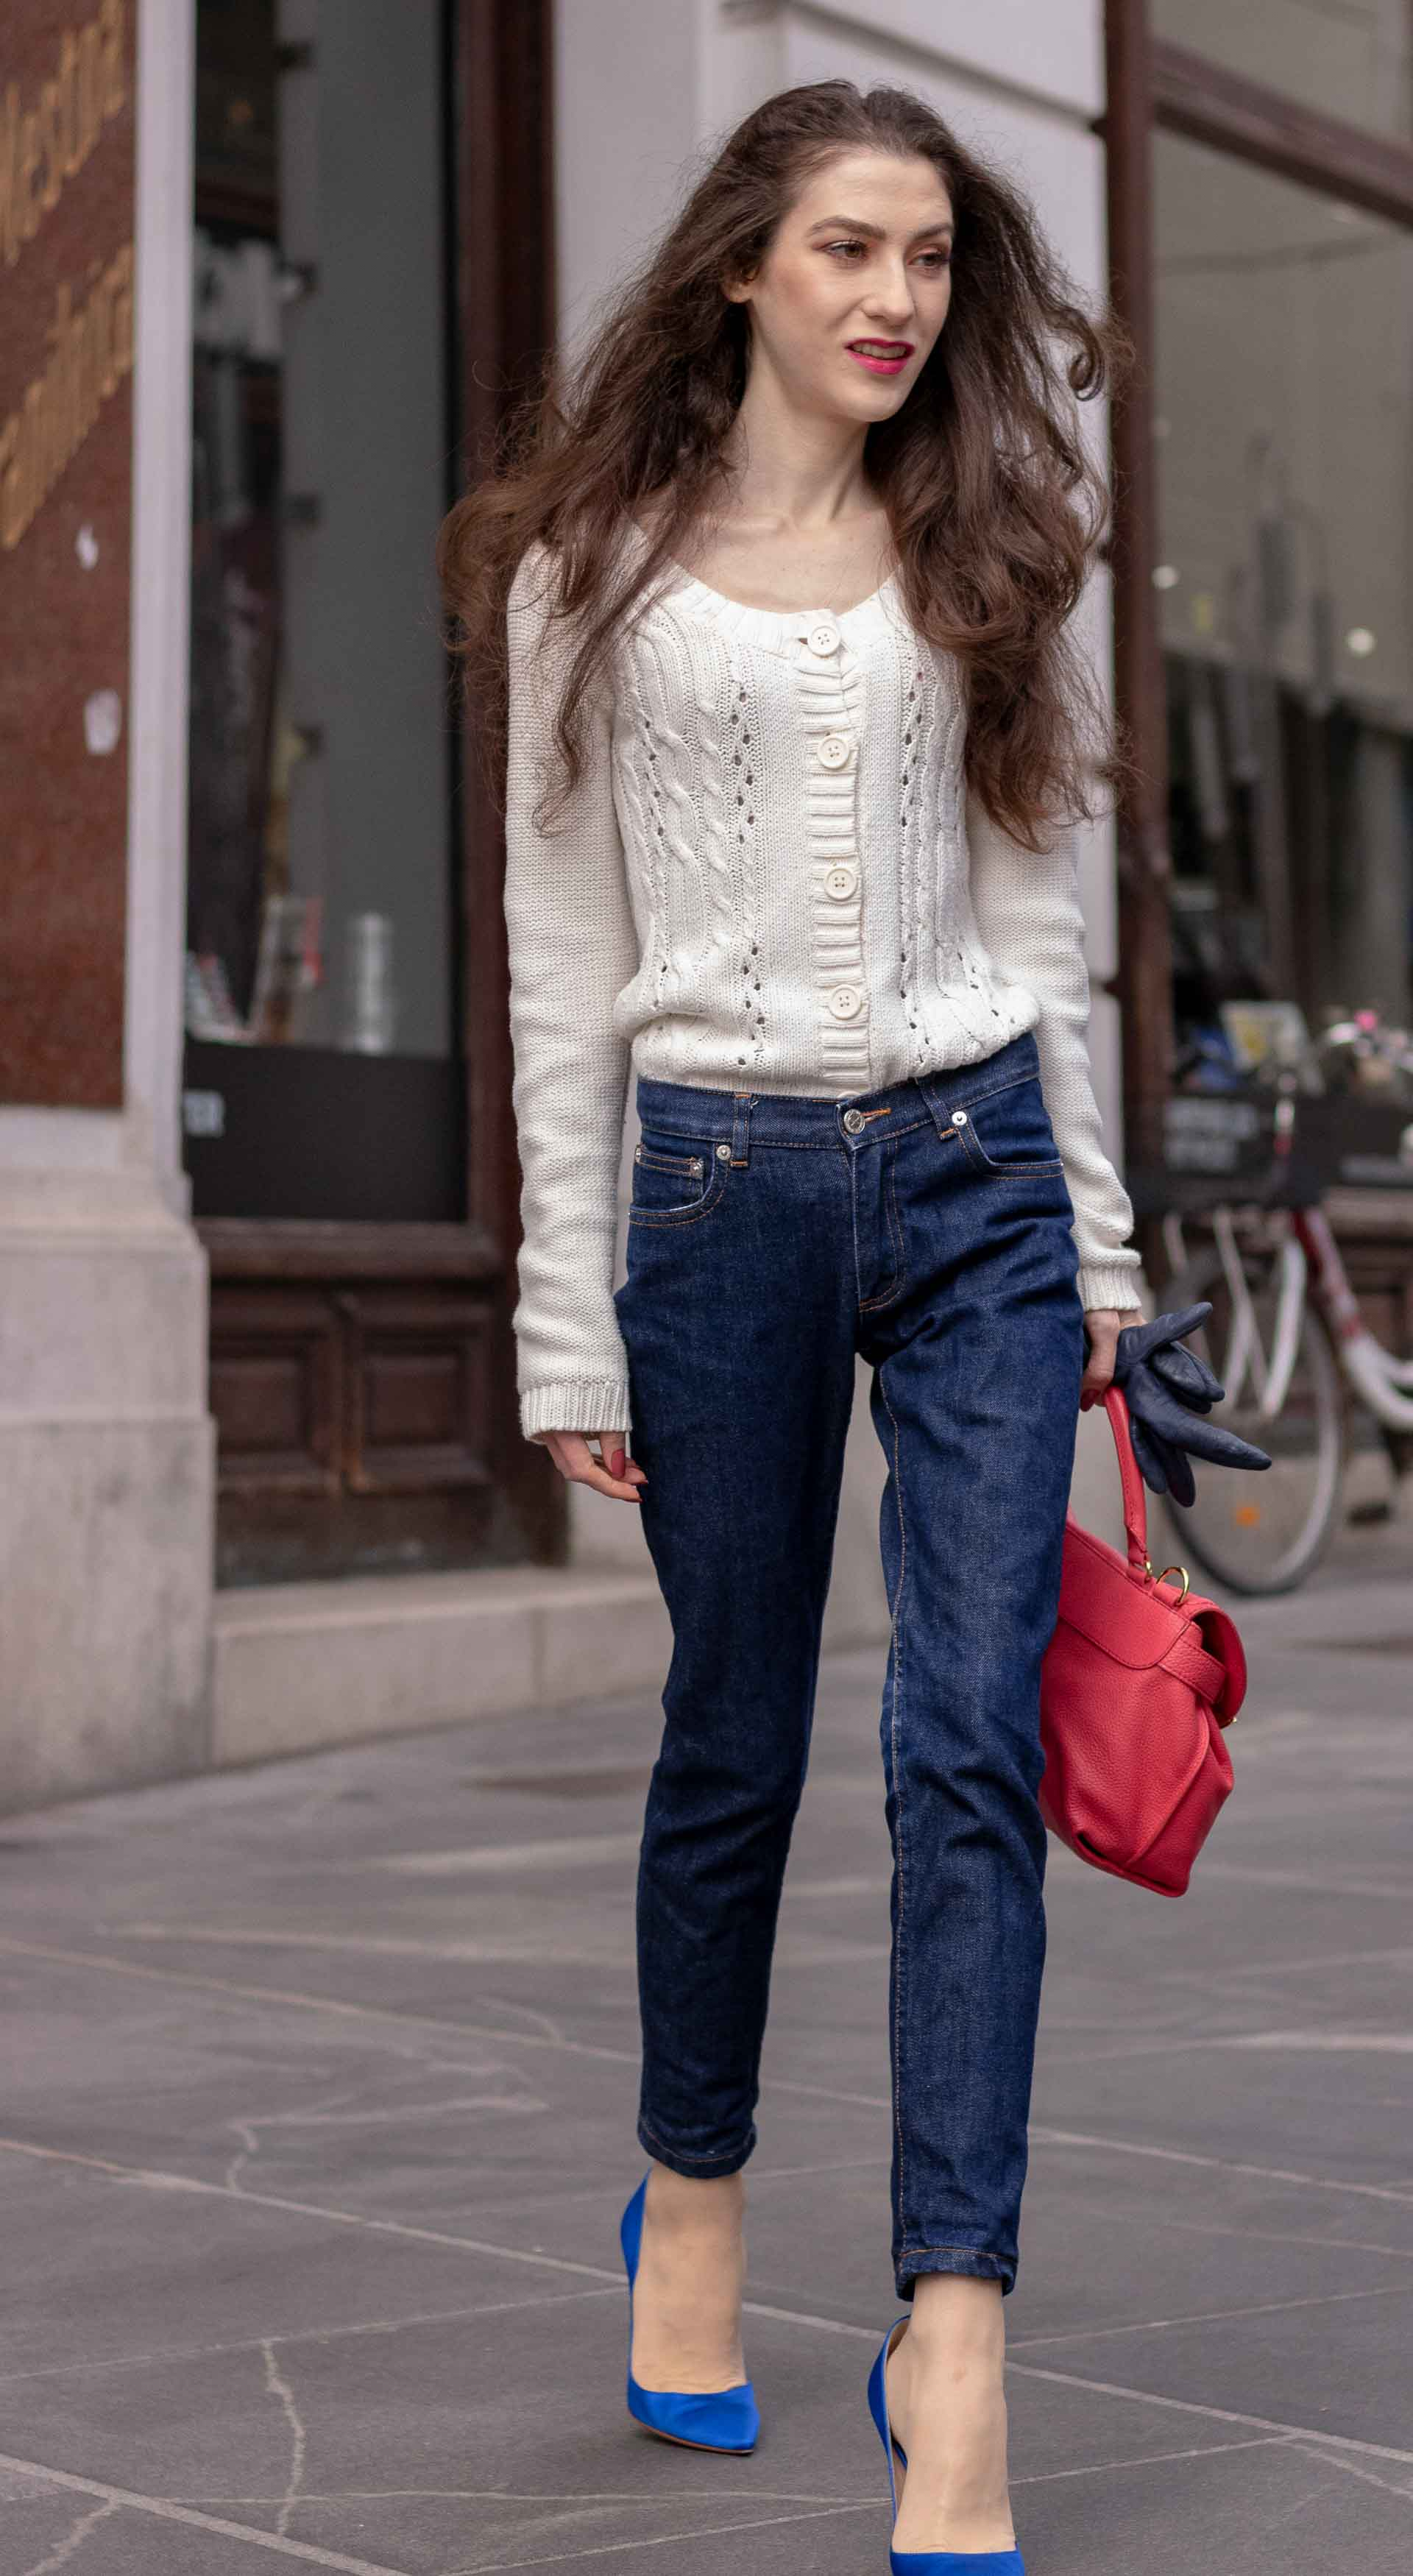 Beautiful Slovenian Fashion Blogger Veronika Lipar of Brunette from Wall dressed in white Mango cardigan tucked into dark blue denim jeans from a.p.c., blue Gianvito Rossi pumps, pink top handle bag walking on the street